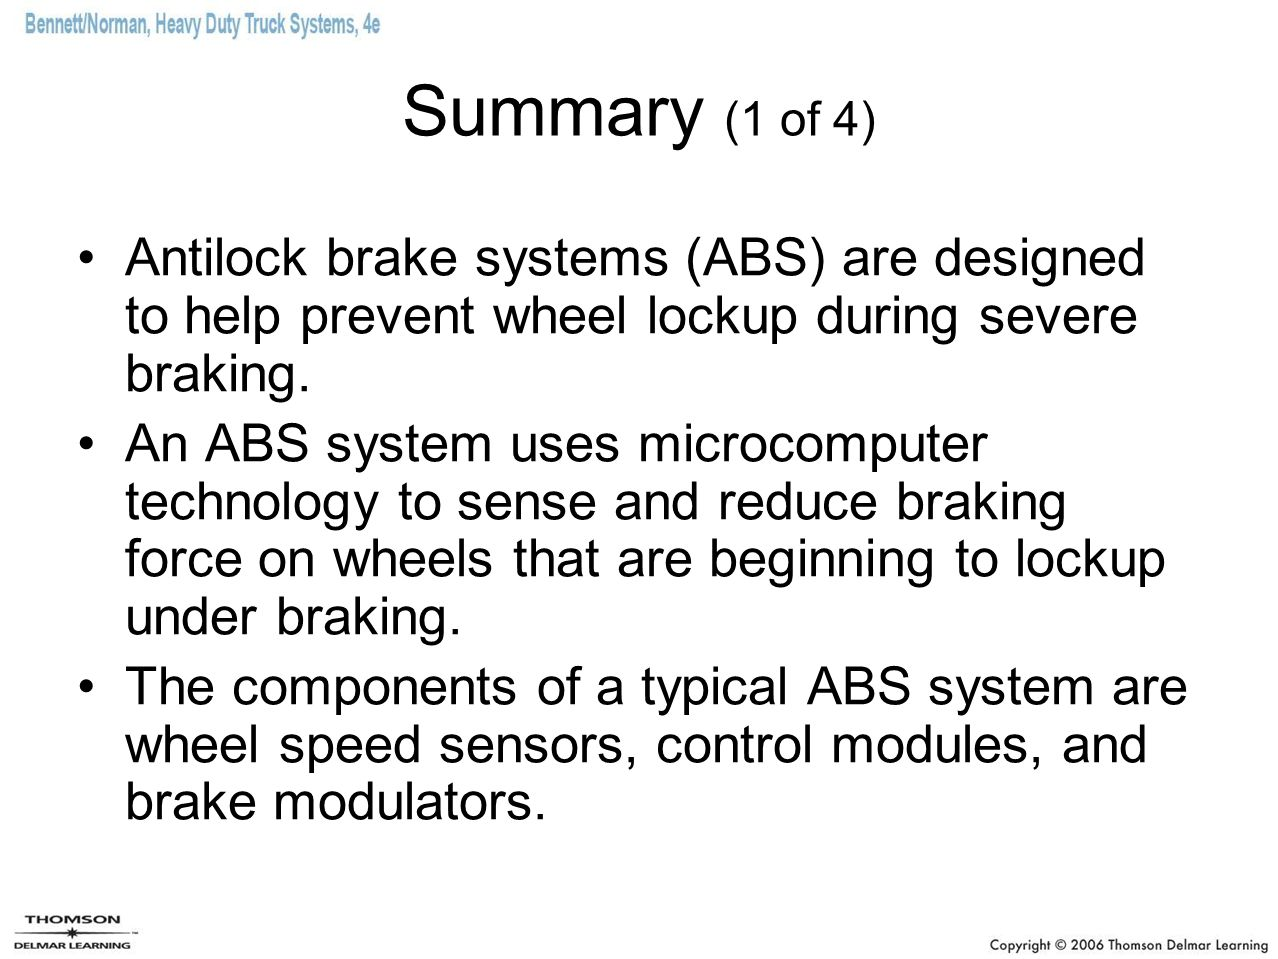 Summary (1 of 4) Antilock brake systems (ABS) are designed to help prevent wheel lockup during severe braking.